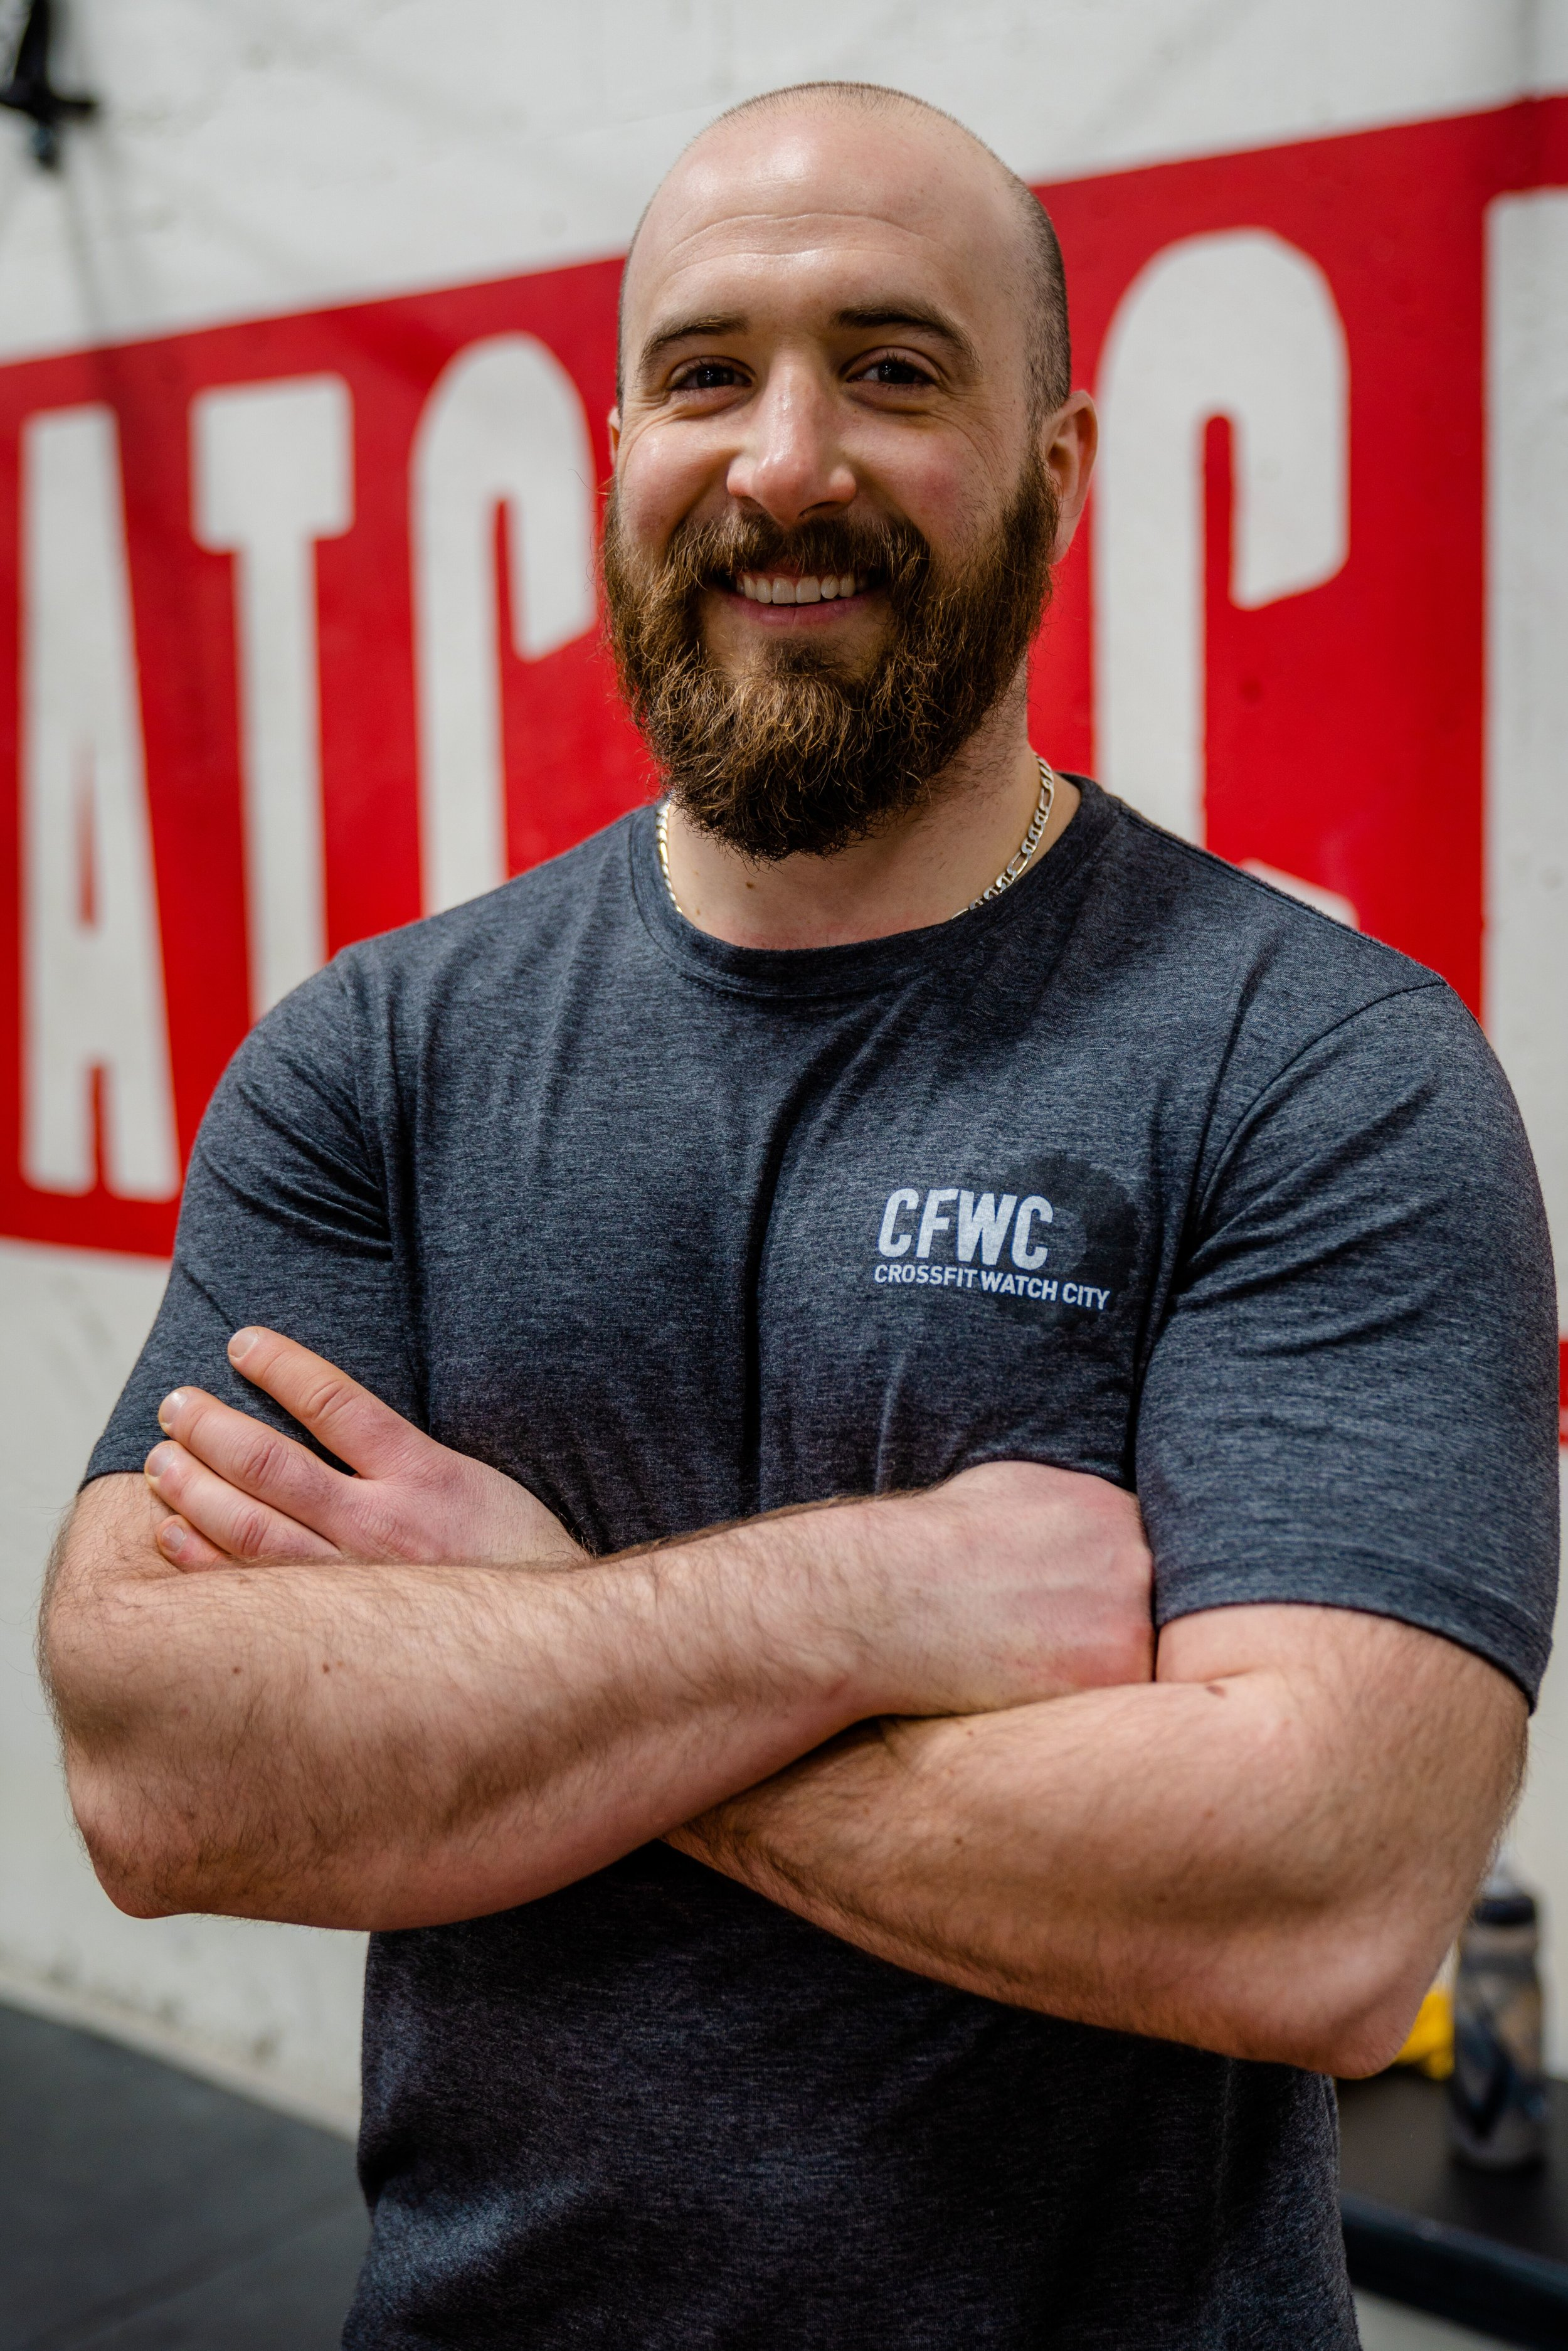 Matt VK - Coach, crossfitI am genuinely passionate about helping others become better versions of themselves and i believe crossfit provides a baseline element to the everyday goals of improving our body, mind, and soul. I am grateful to be able to guide others towards accomplishing their goals at crossfit watch city.